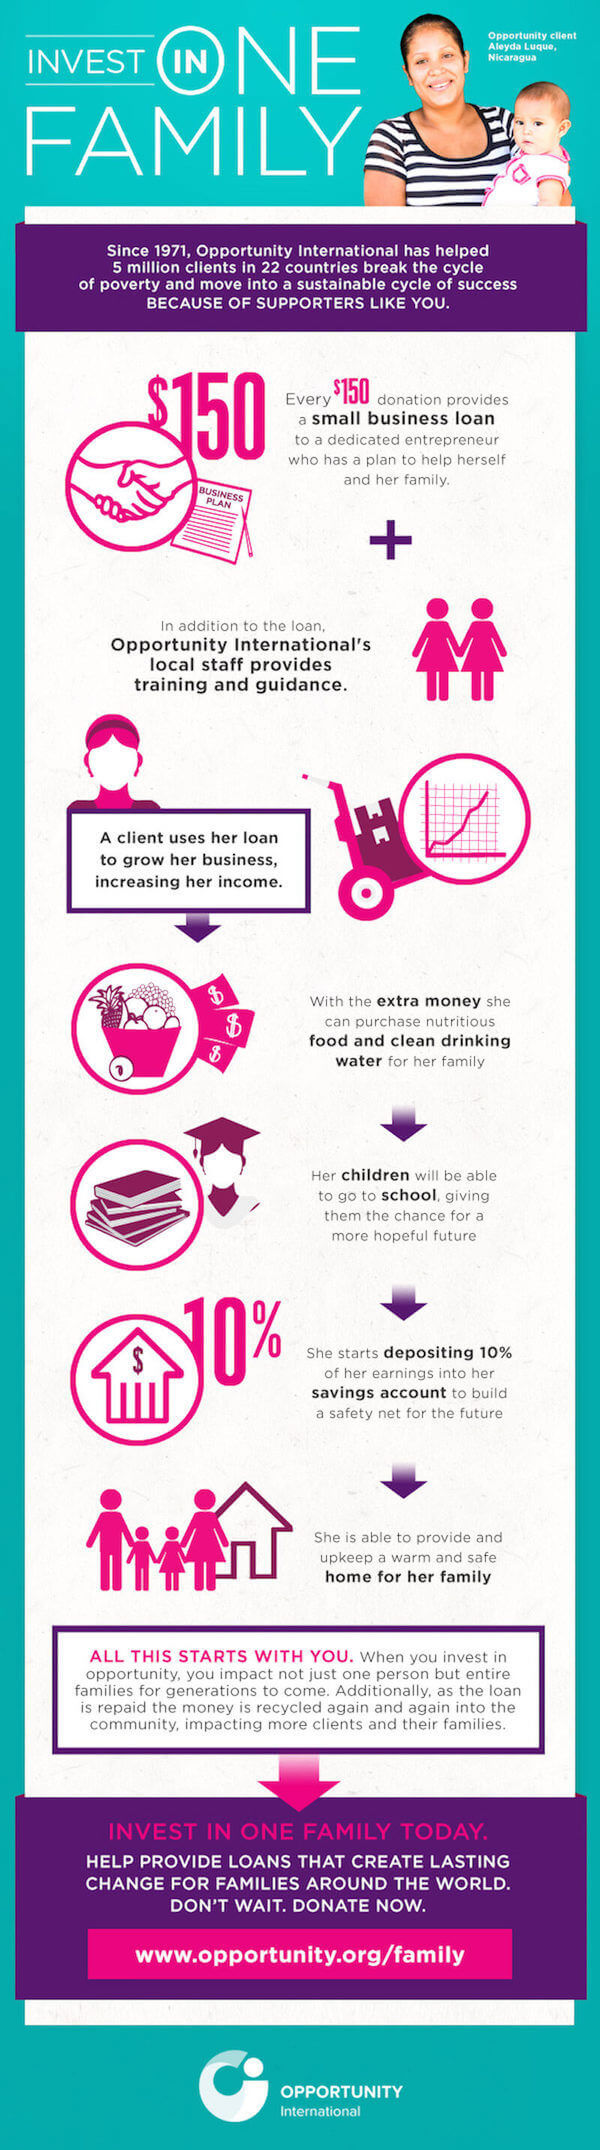 Invest in One Family Infographic